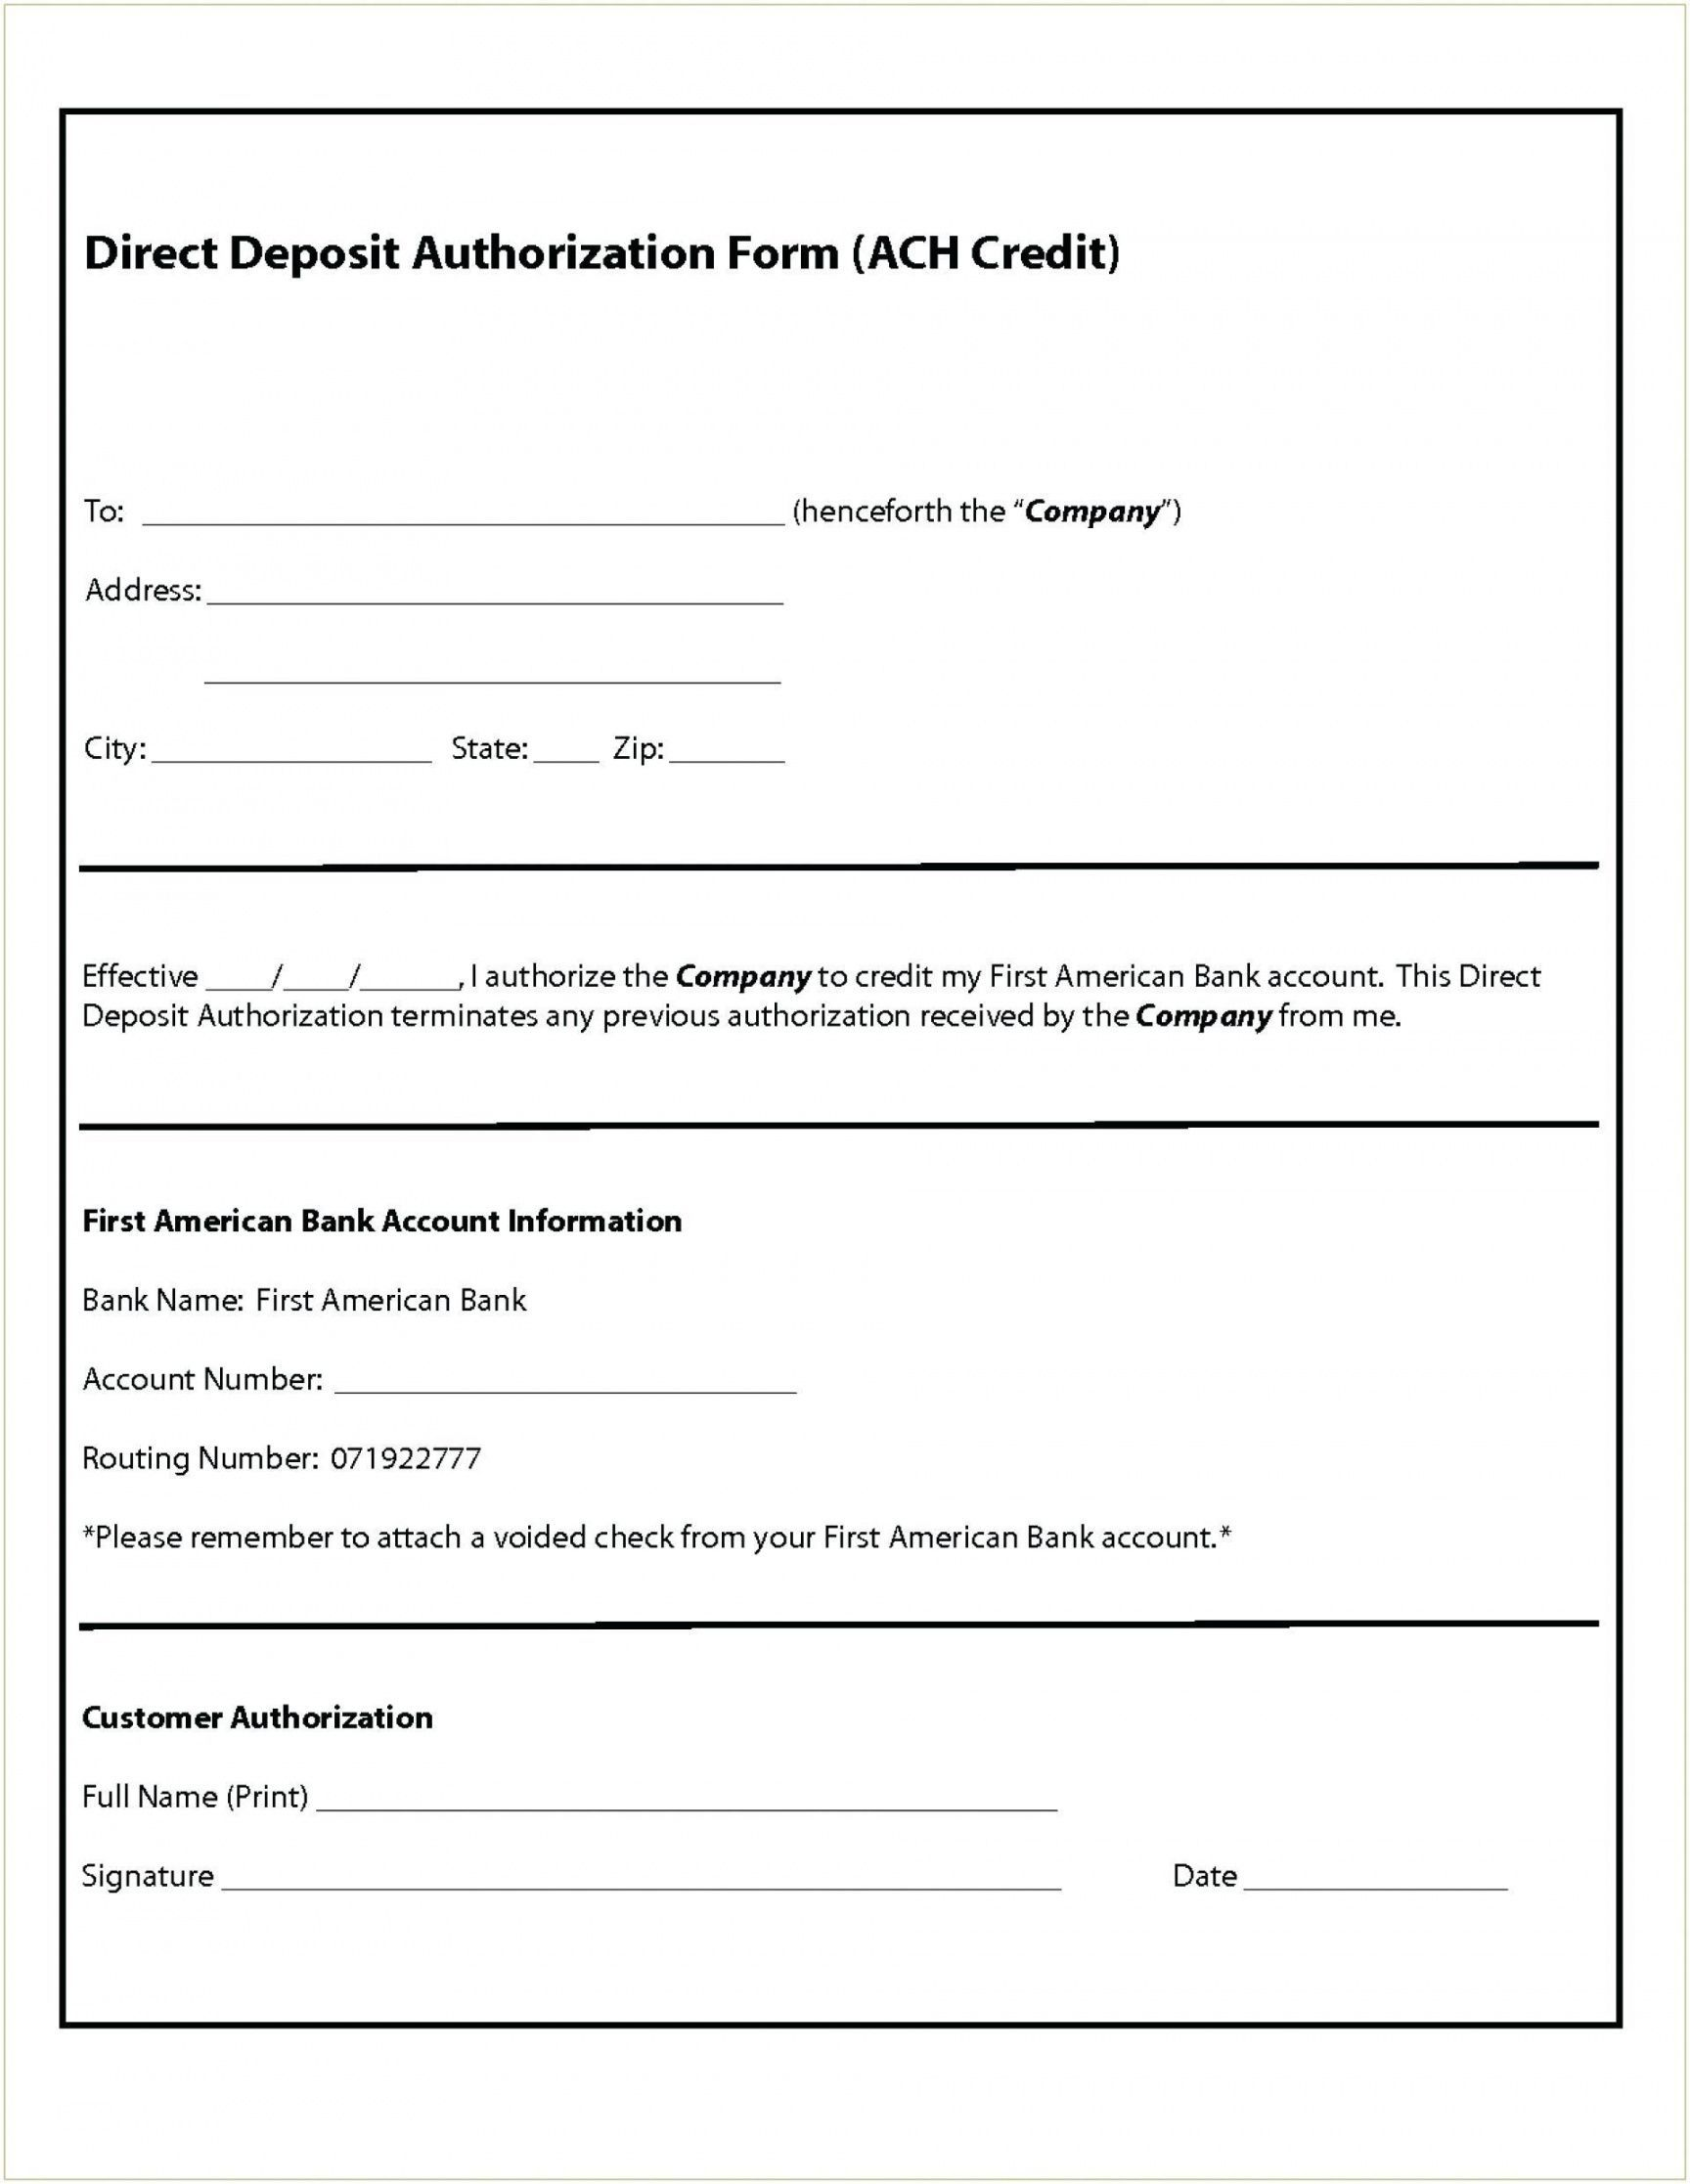 Get Our Image Of Direct Deposit Request Form Template Deposit This Or That Questions Templates